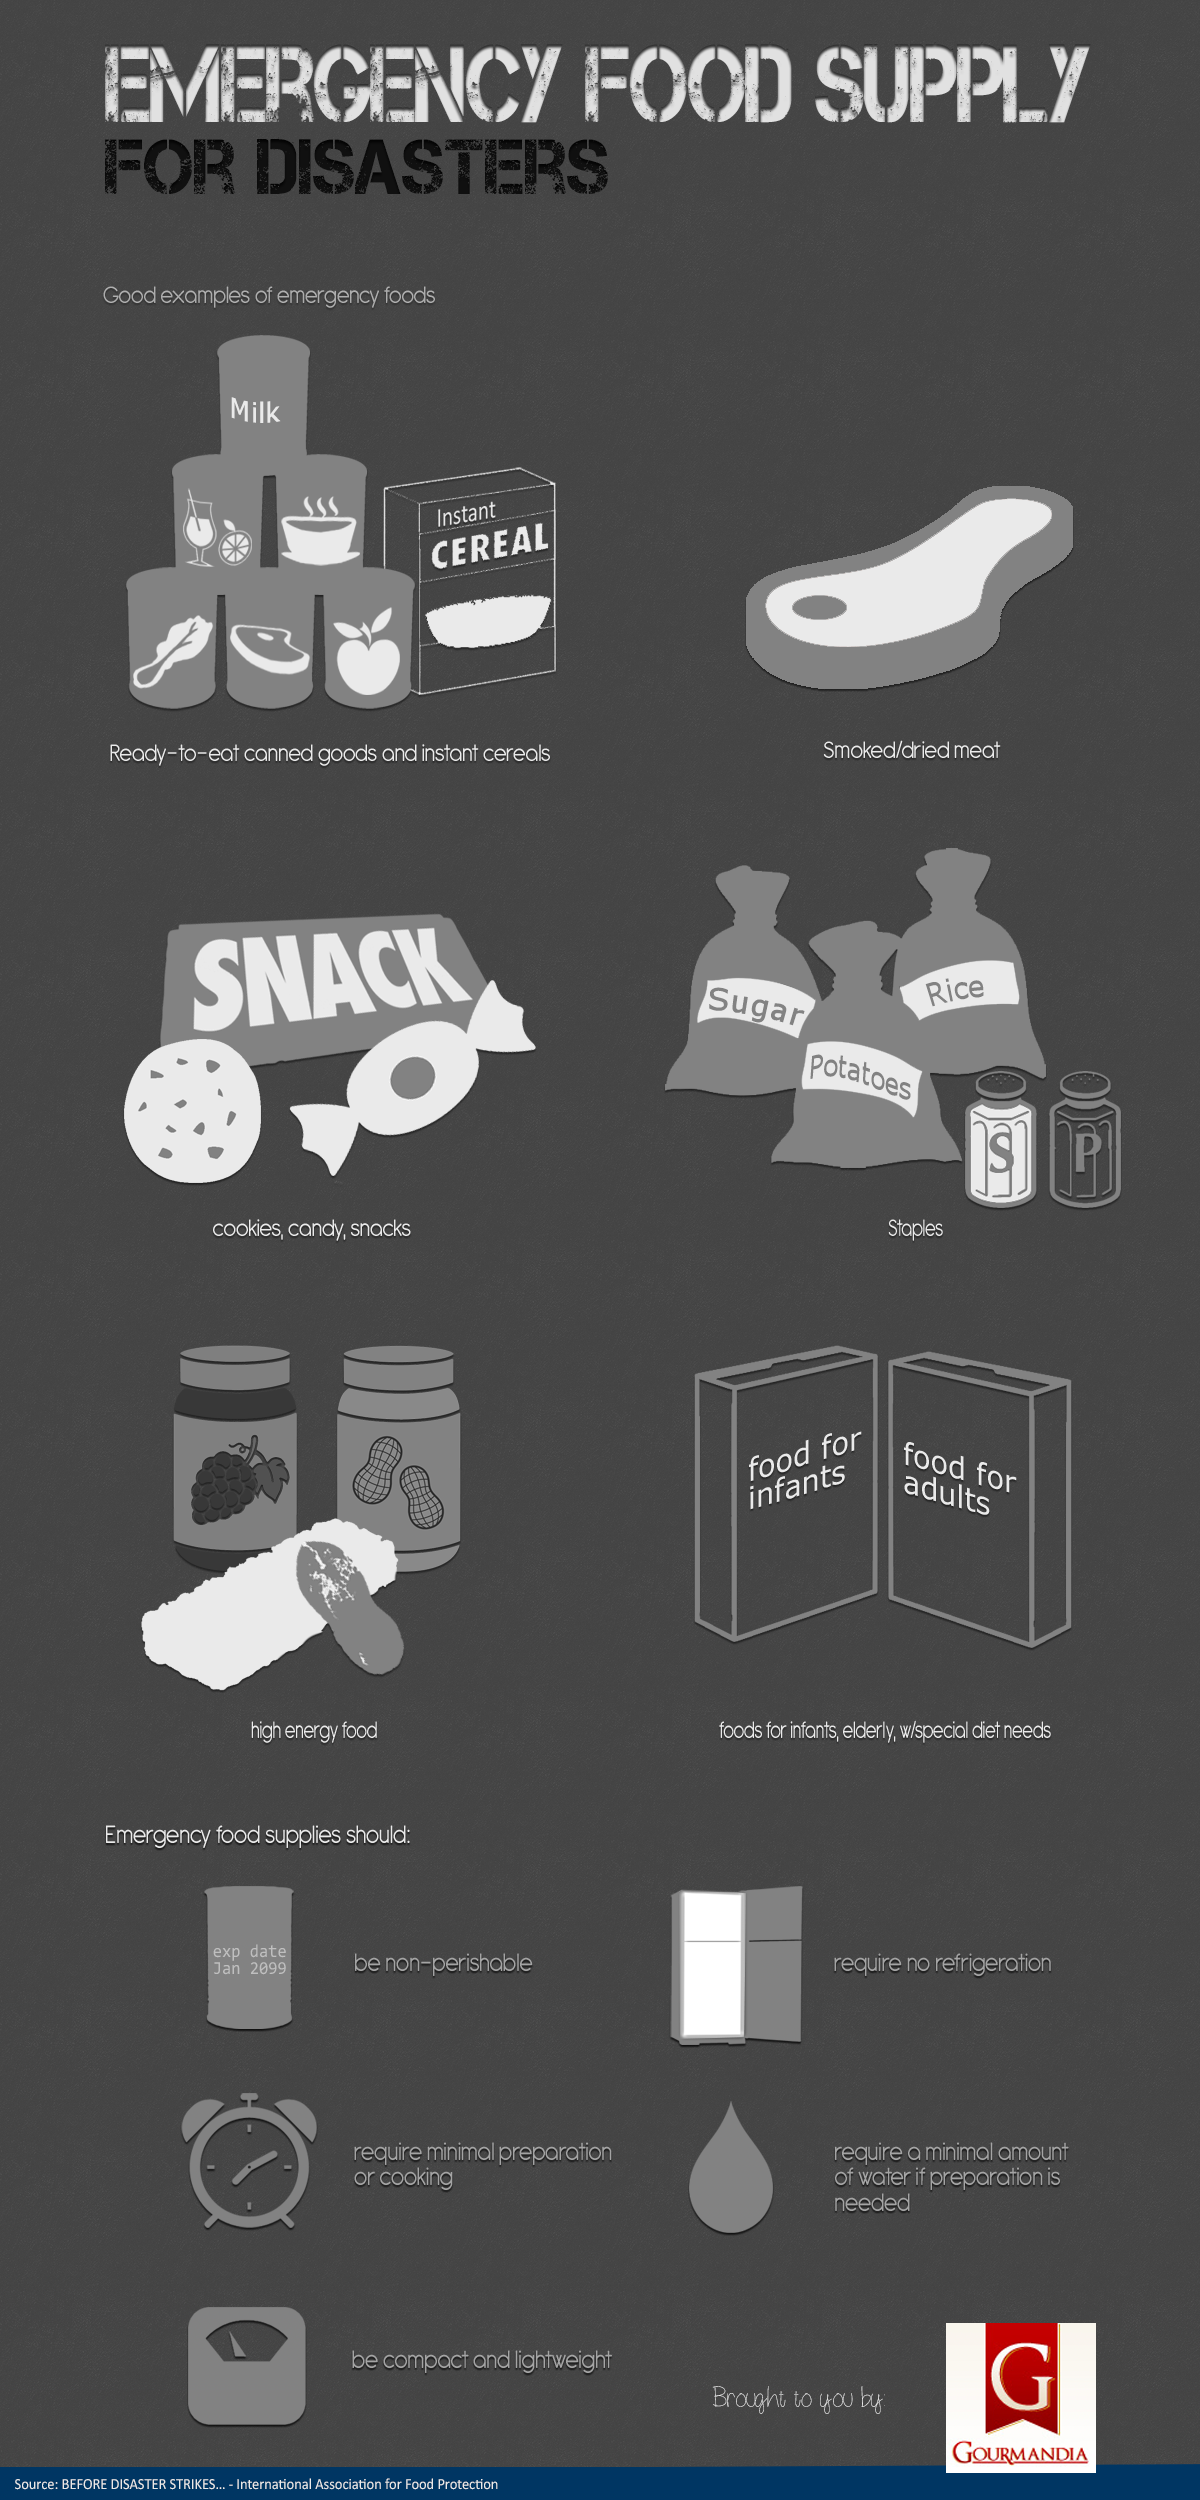 Emergency Foods: Canned And Fermented Foods